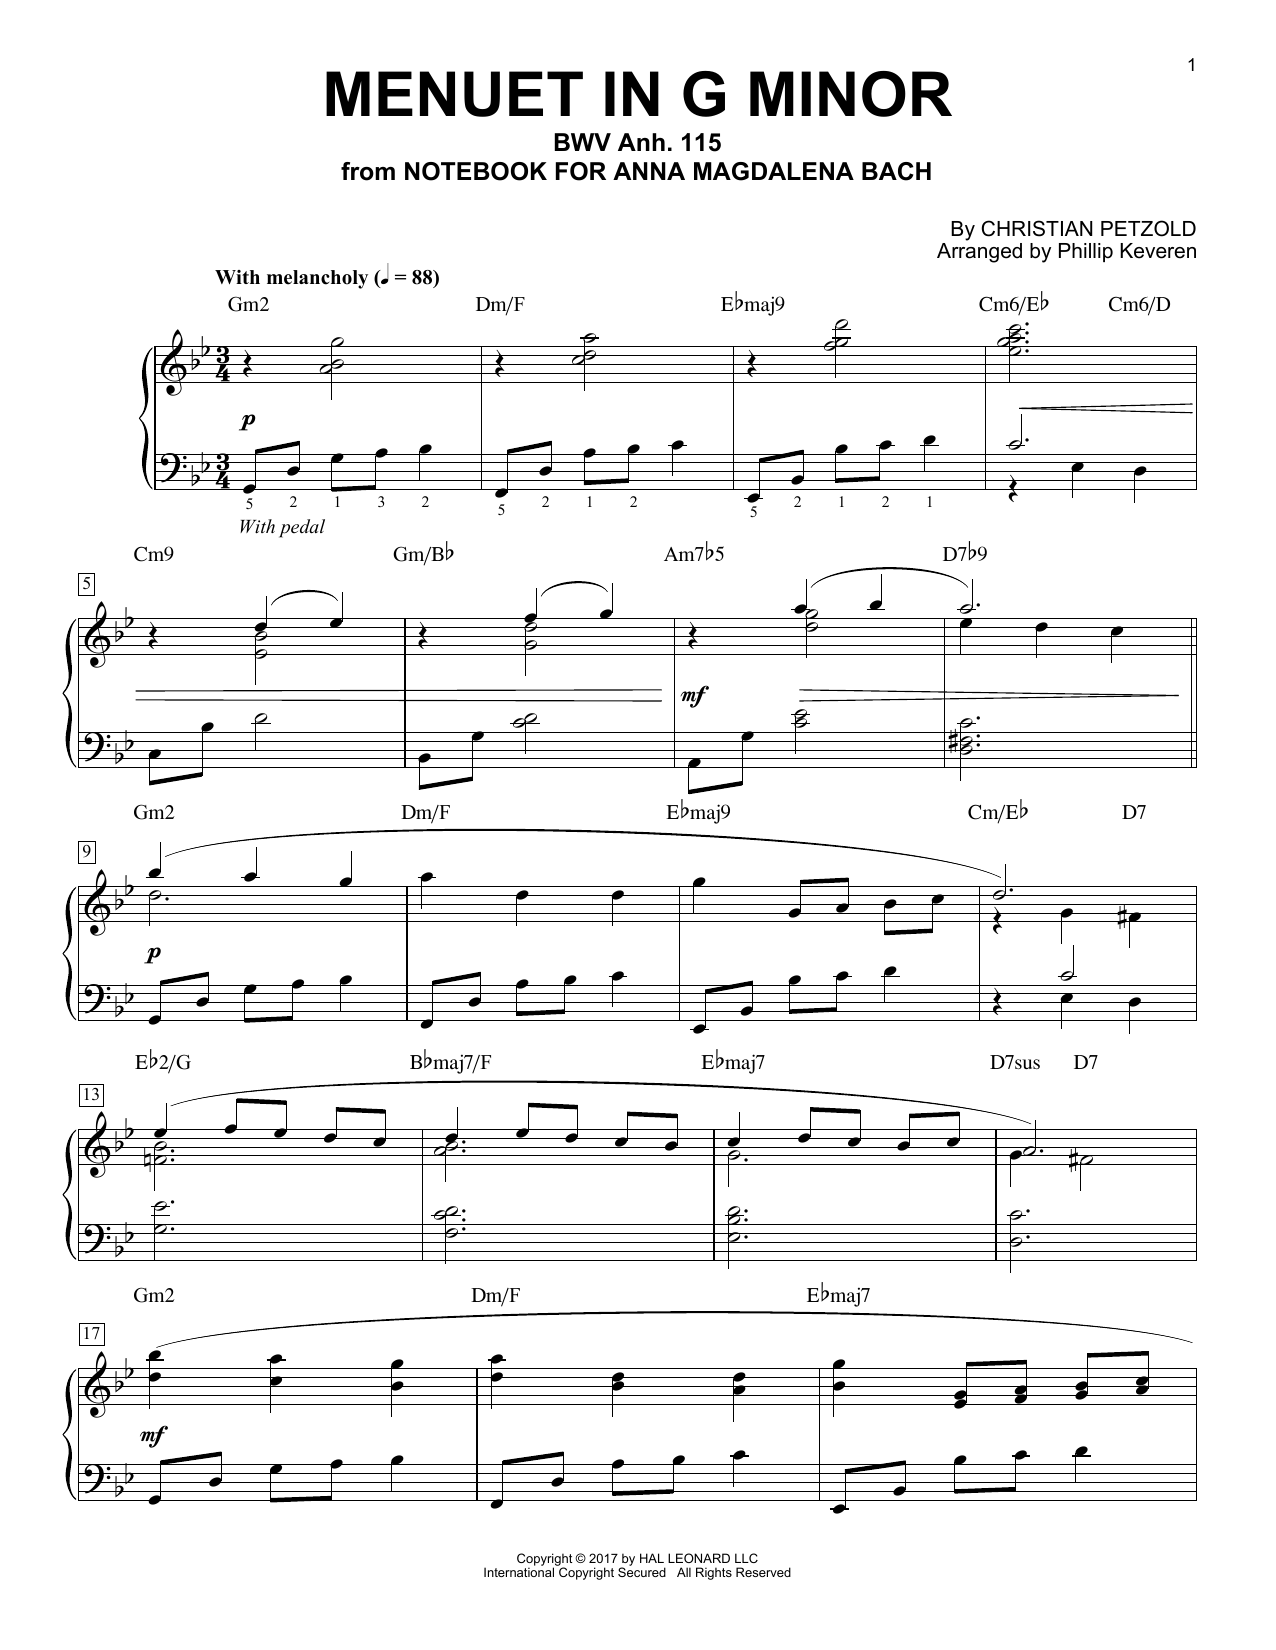 Christian Petzold Menuet In G Minor, BMV Anh. 115 [Jazz version] (arr. Phillip Keveren) sheet music notes and chords